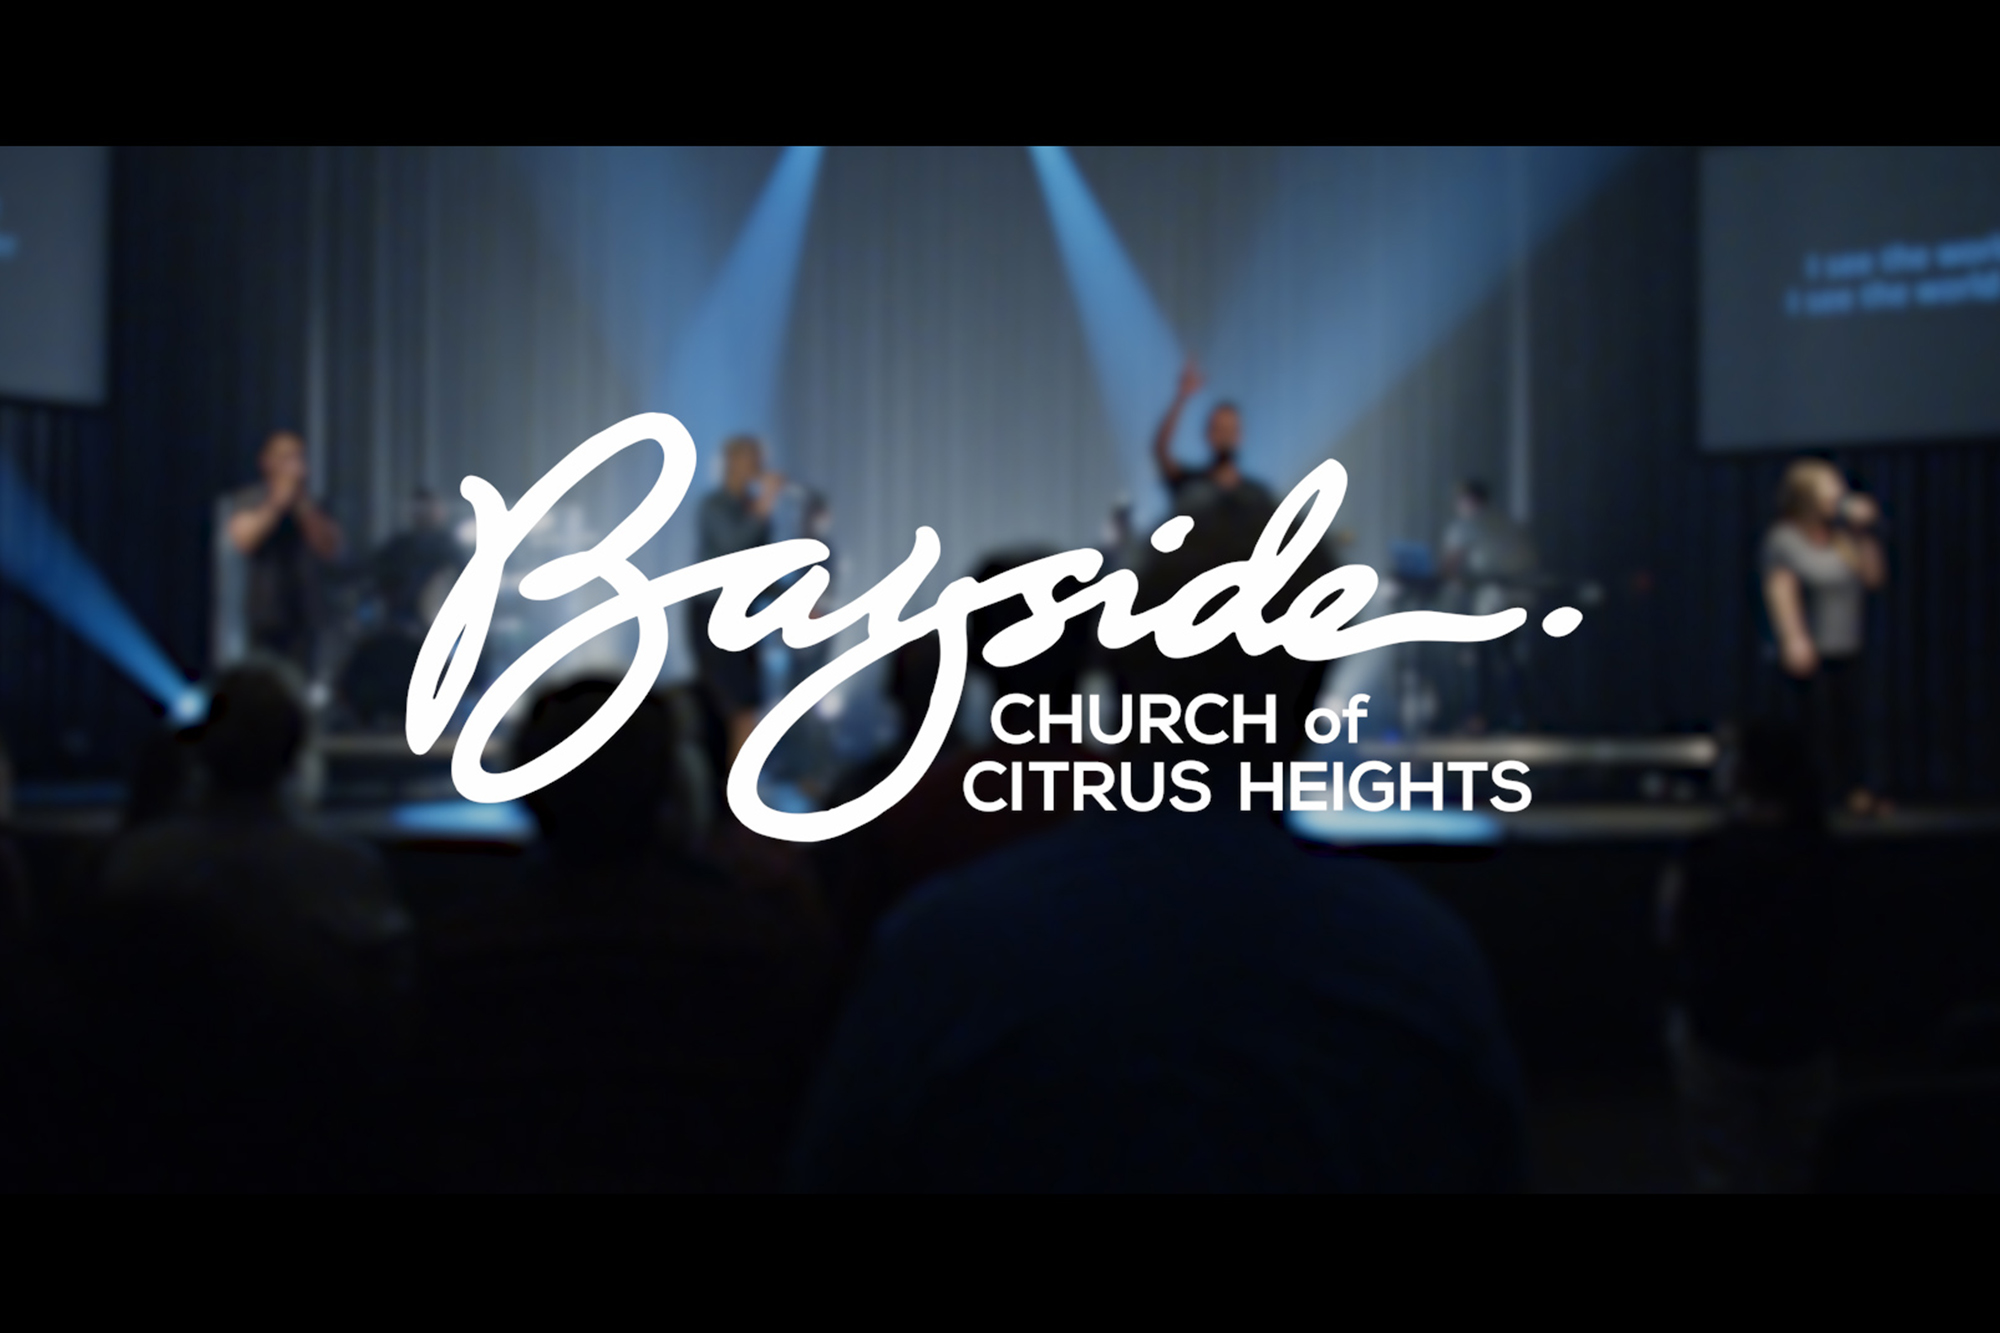 Bayside Church of Citrus Heights